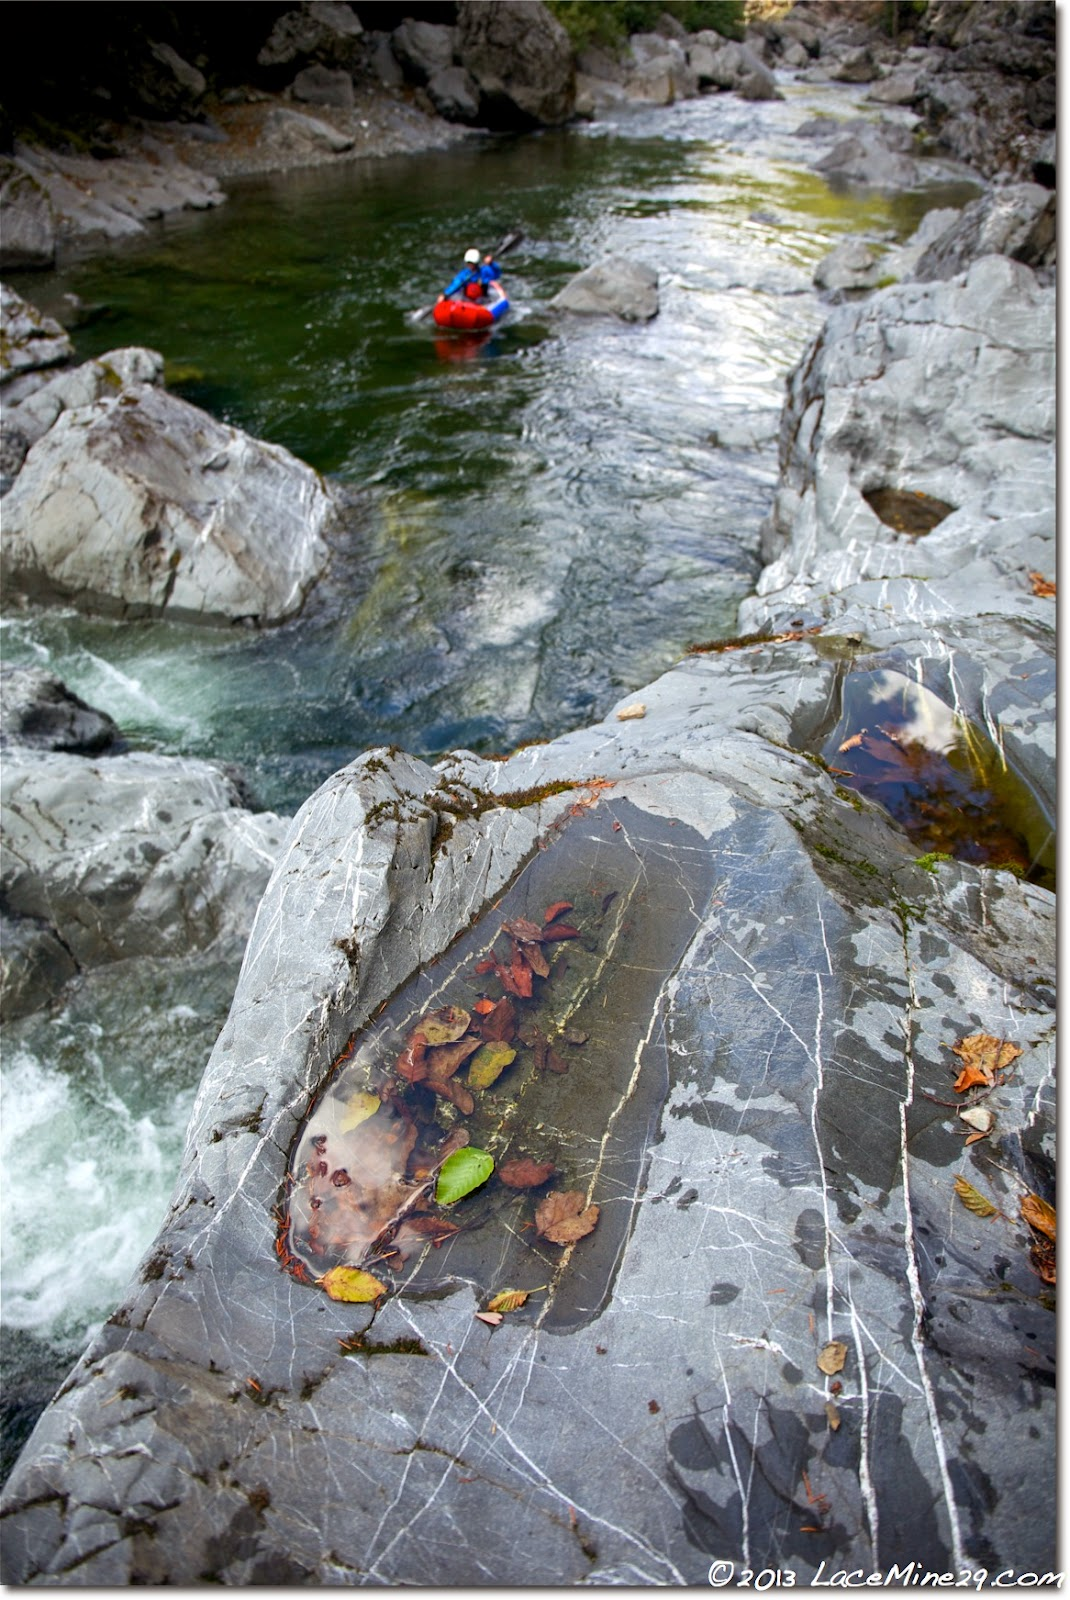 On the Chetco River: A Packrafting Adventure